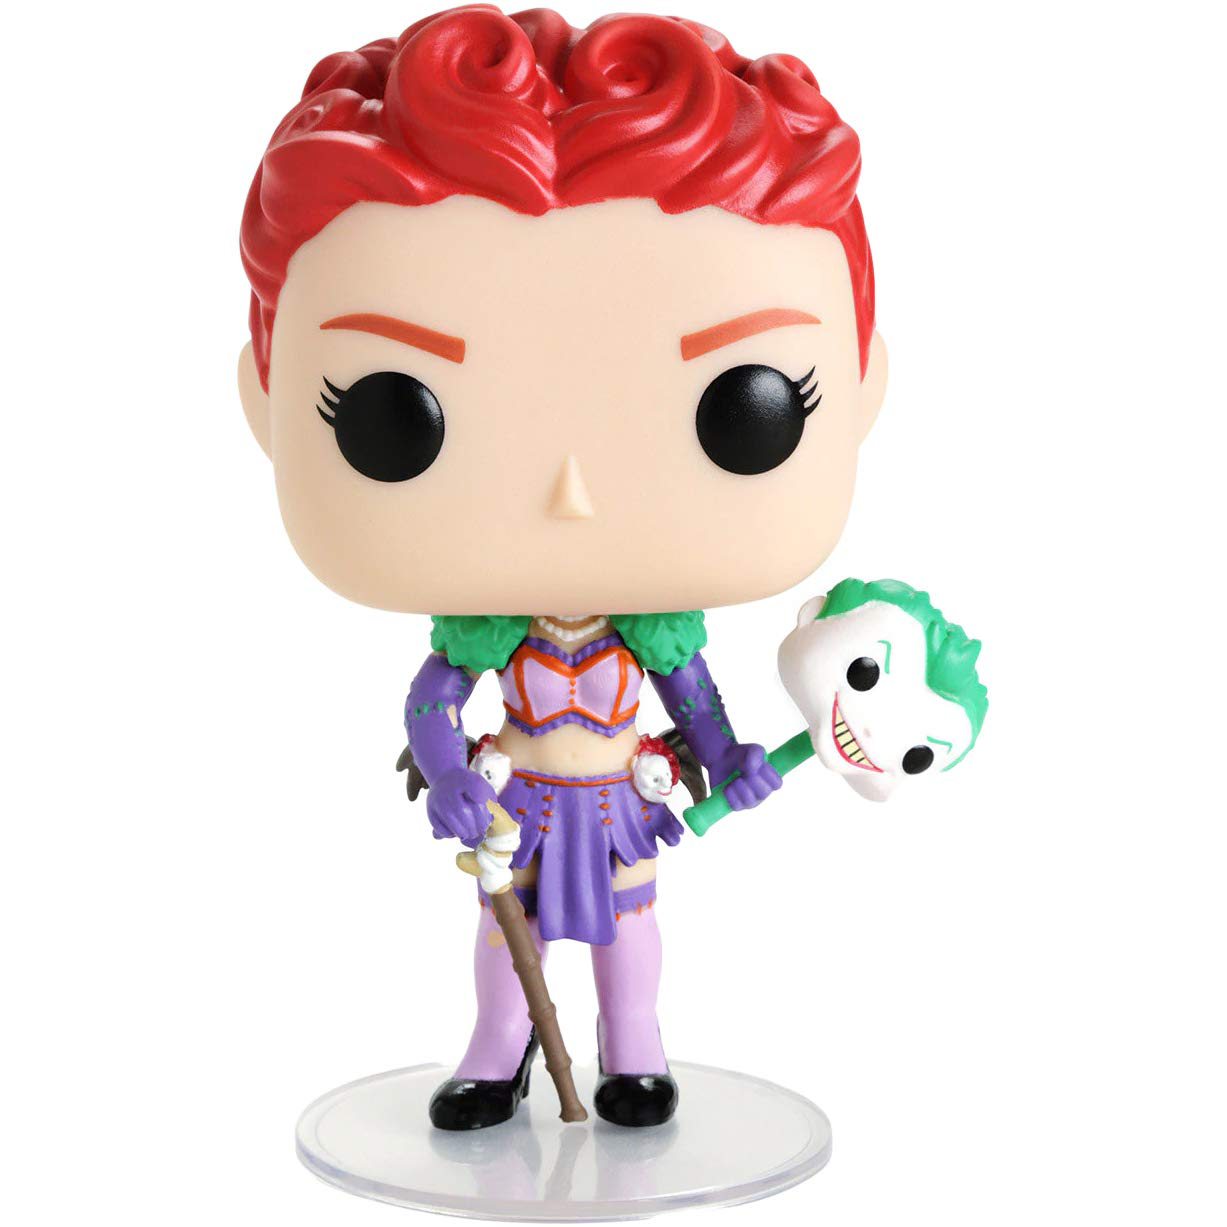 Hot Topic Exclusive #257 // 34073 - B Funko Duela Dent Heroes Vinyl Figure /& 1 POP BCC9UC40 Compatible PET Plastic Graphical Protector Bundle : DC Bombshells x POP